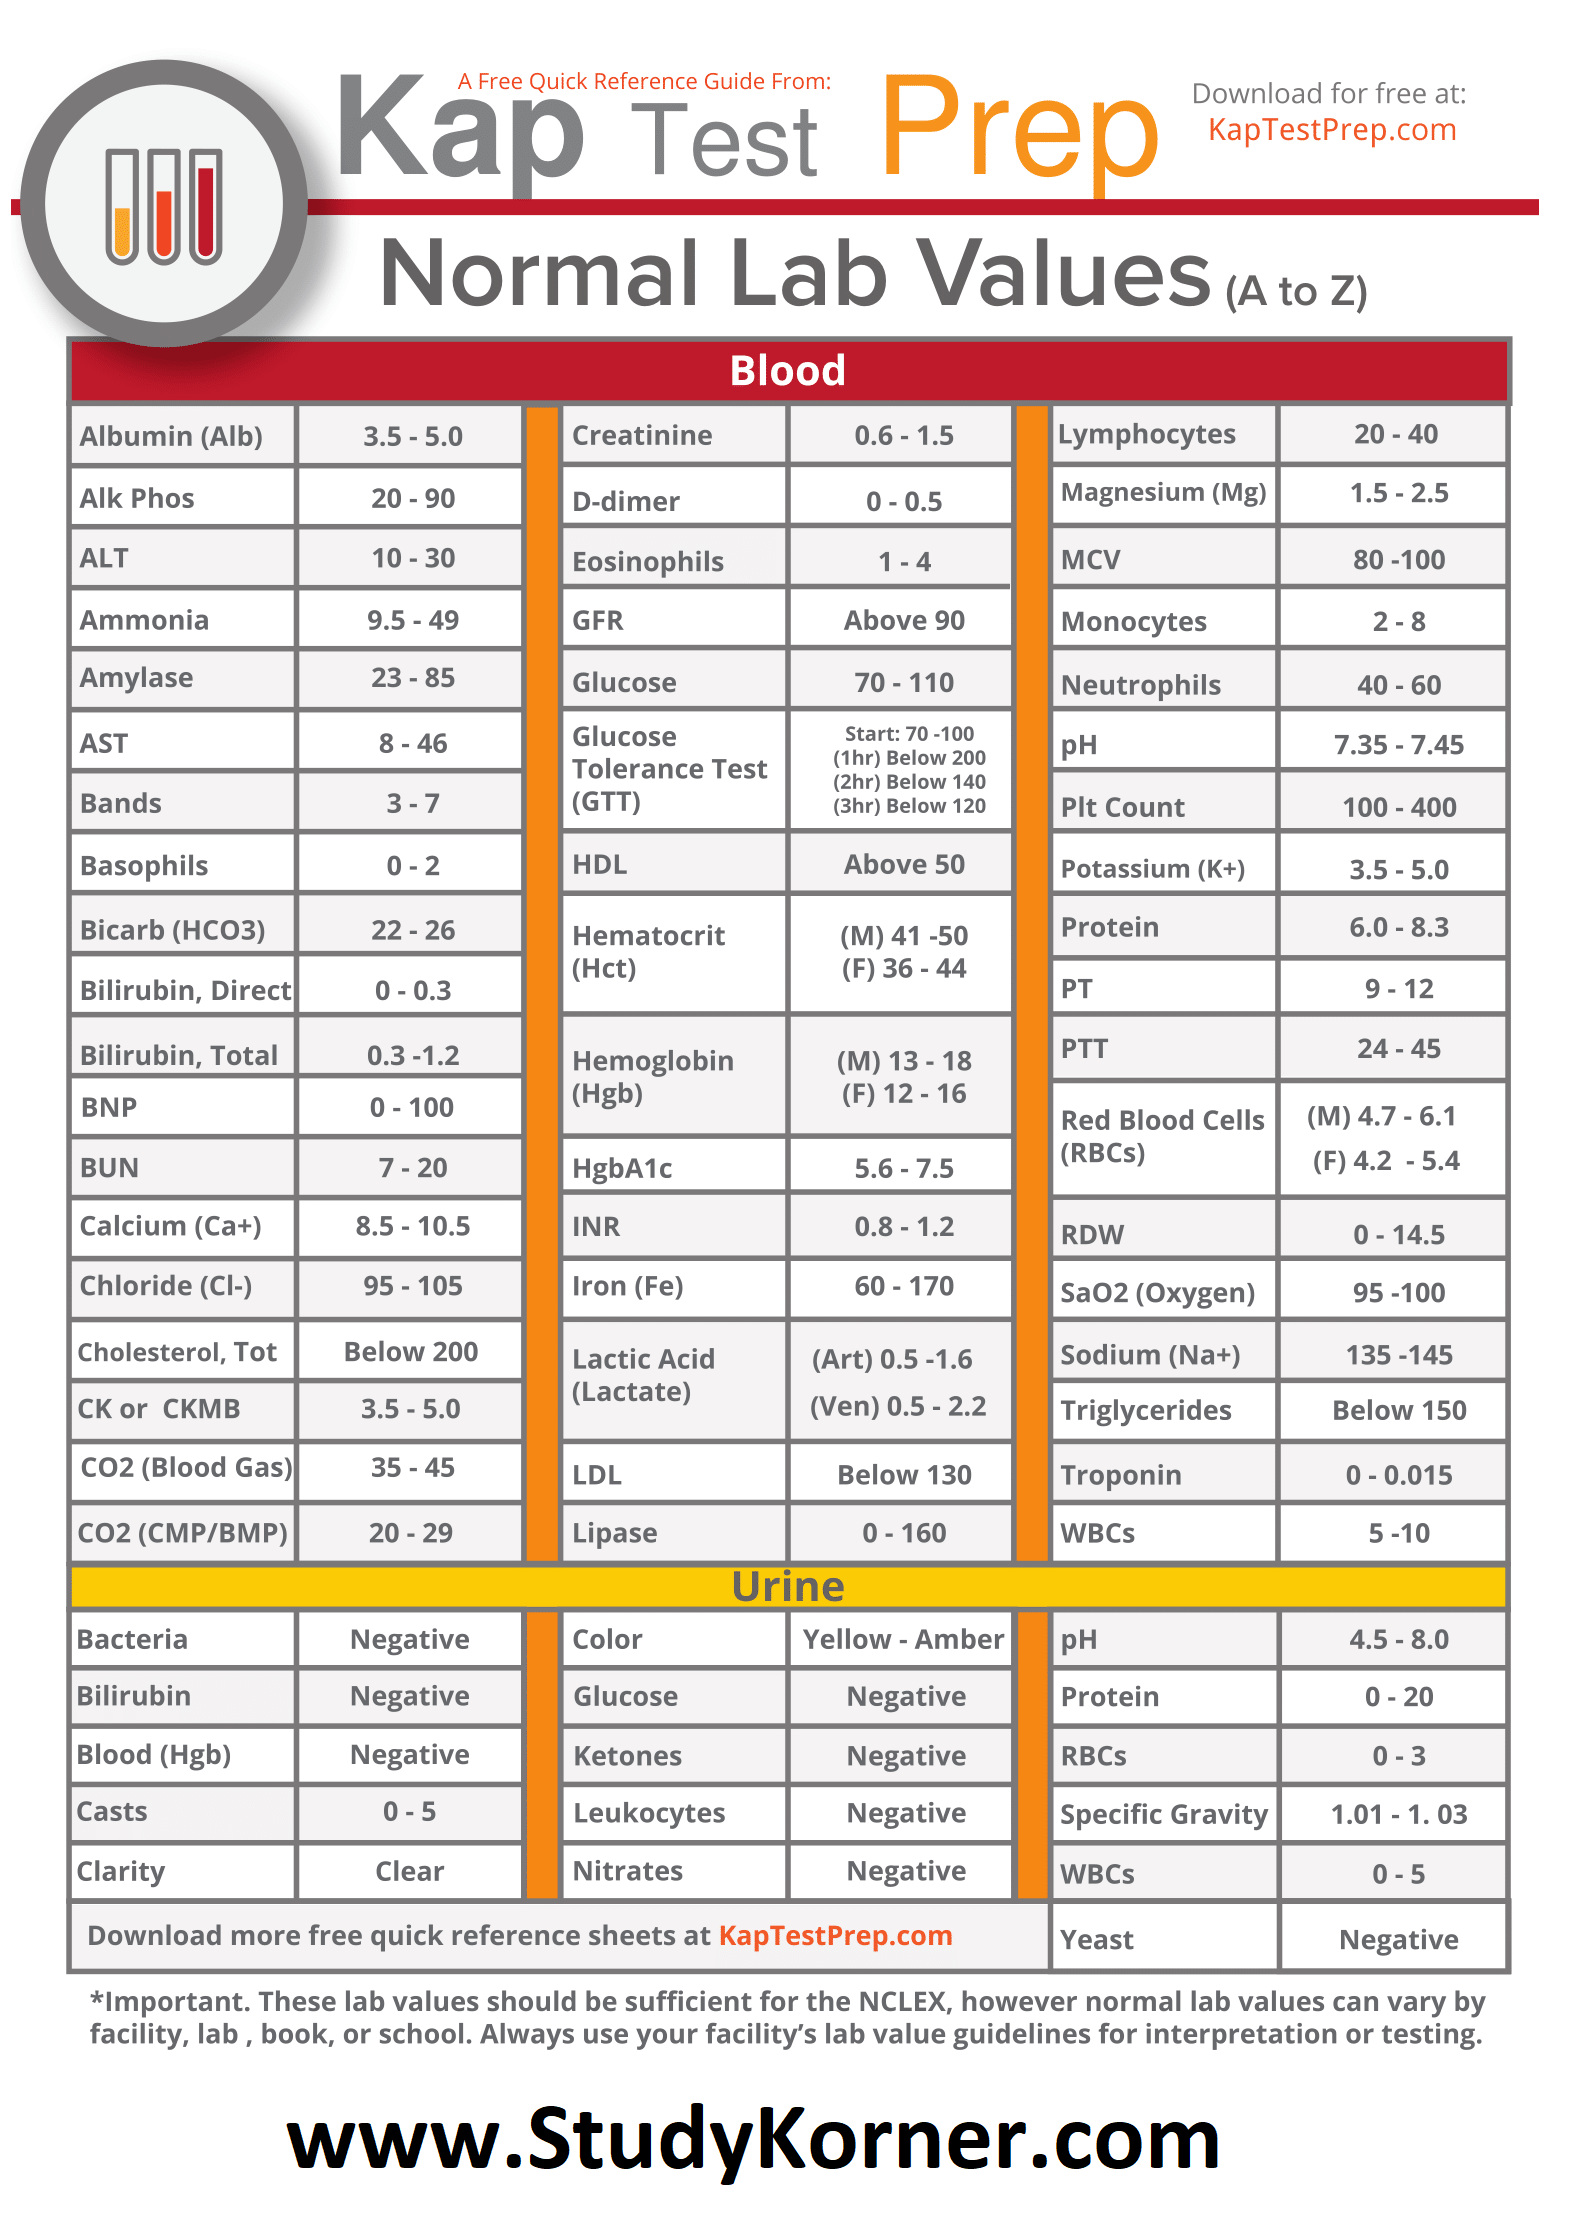 Normal Lab Values Cheat Sheet For Nclex Lab Values From A To Z